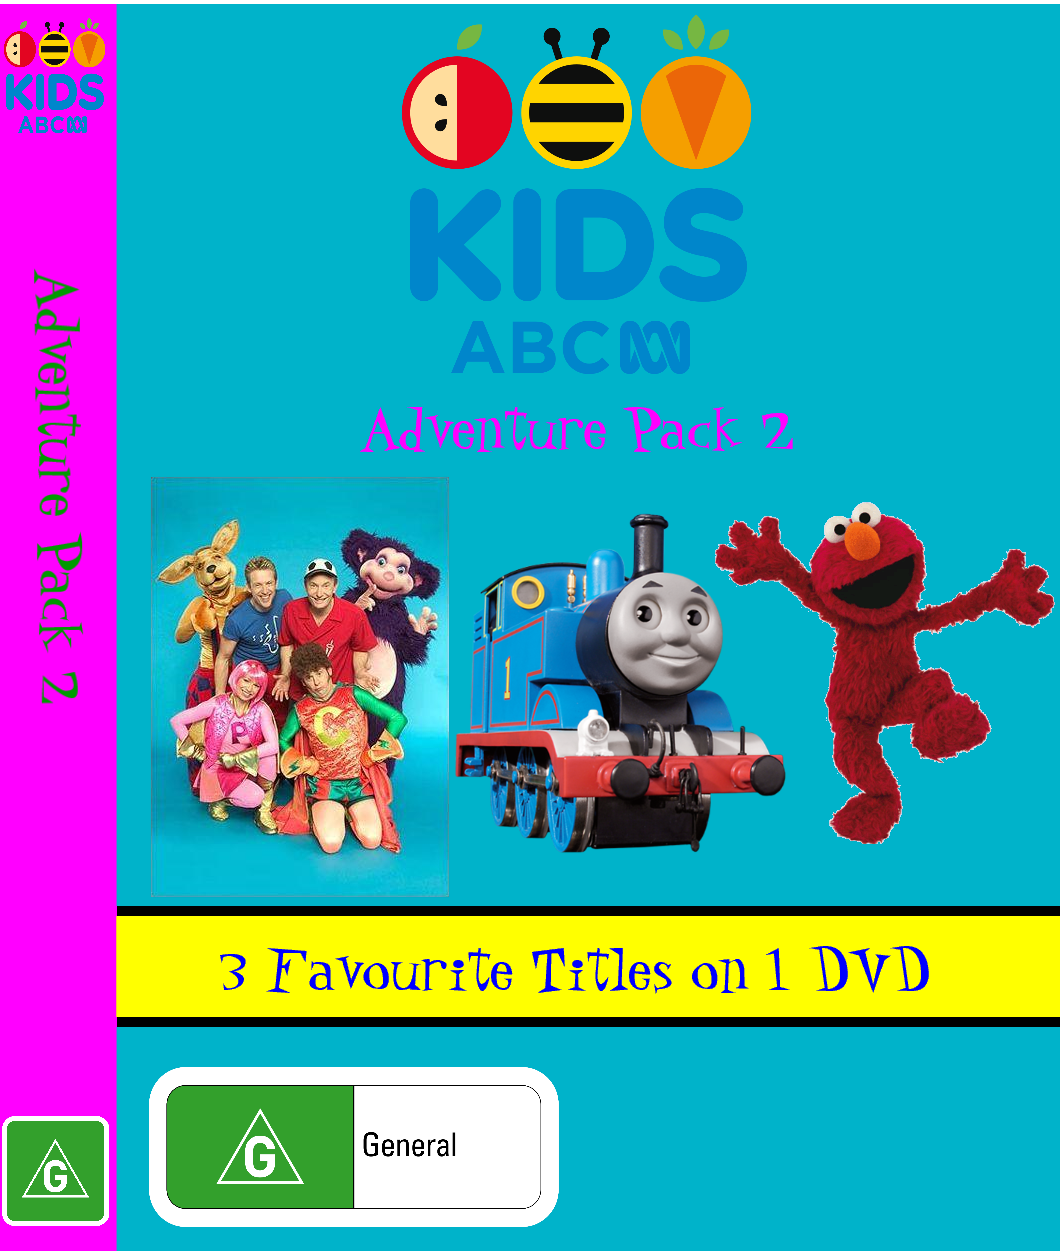 ABC For Kids Fanon: ABC For Kids - Adventure Pack 2 (video)